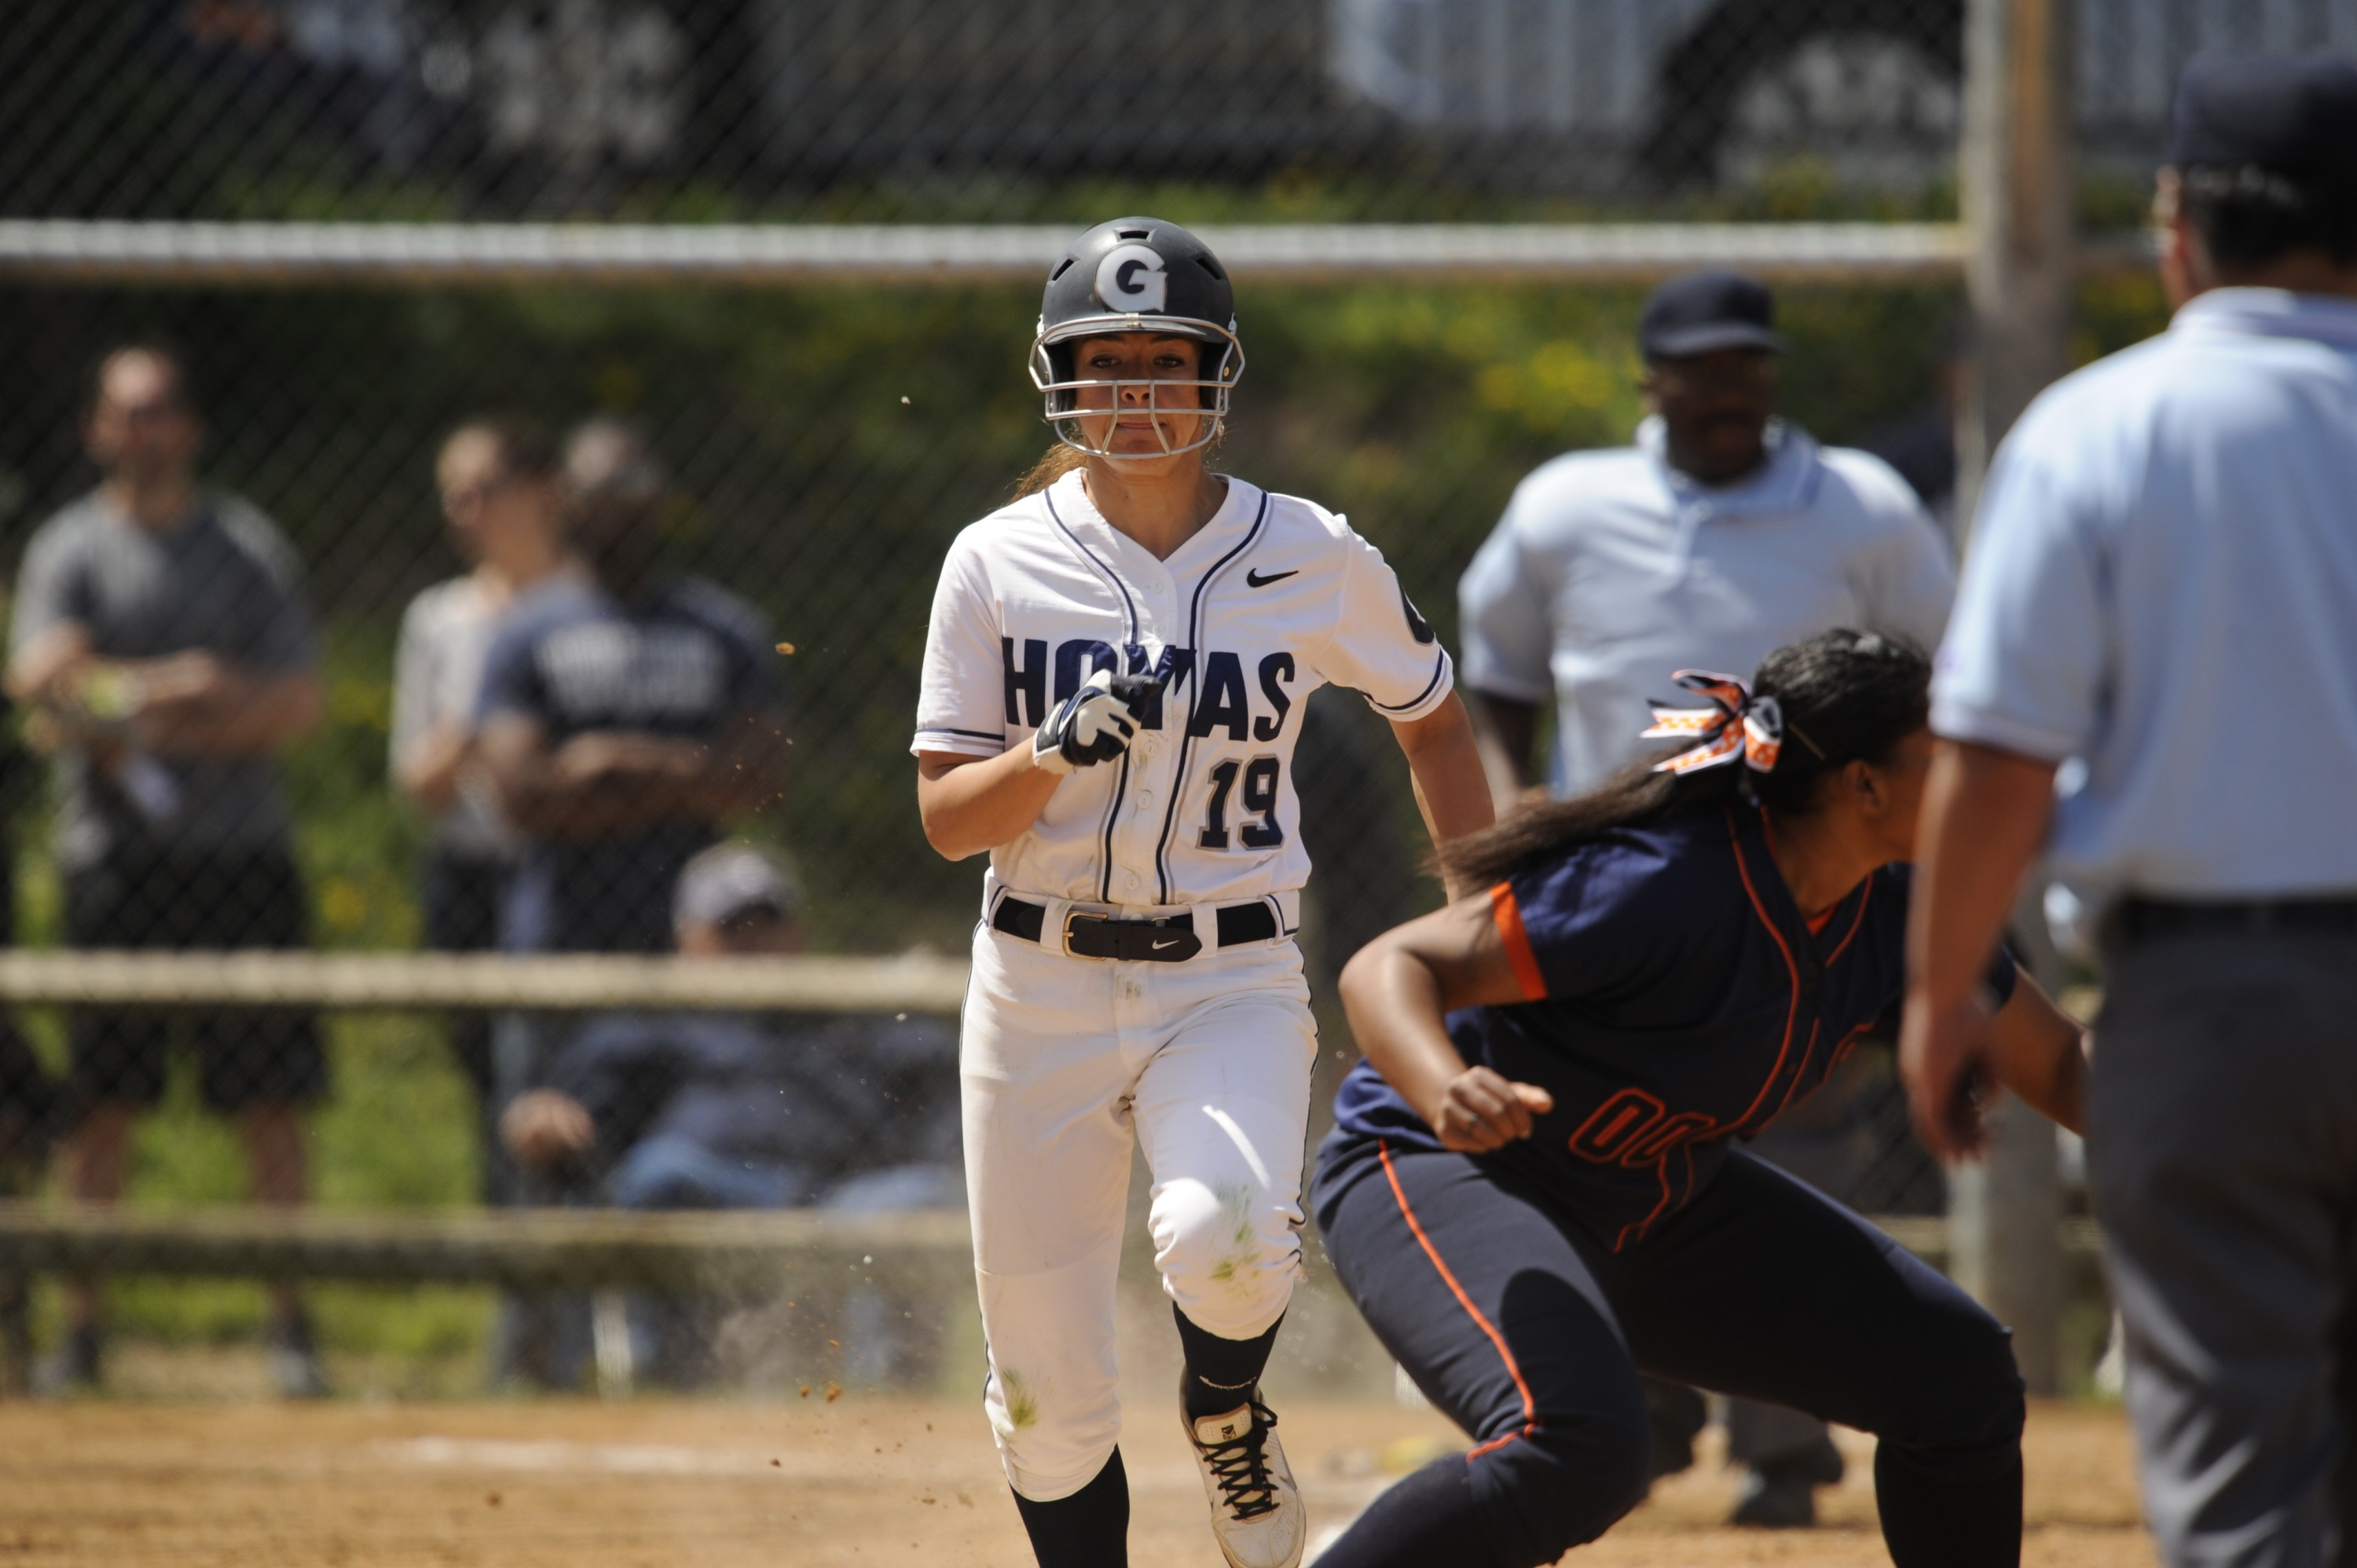 <b> Sophia Gargicevich-Almeida is one of three seniors who will be recognized prior to the start of Saturday's doubleheader versus Providence.</b>